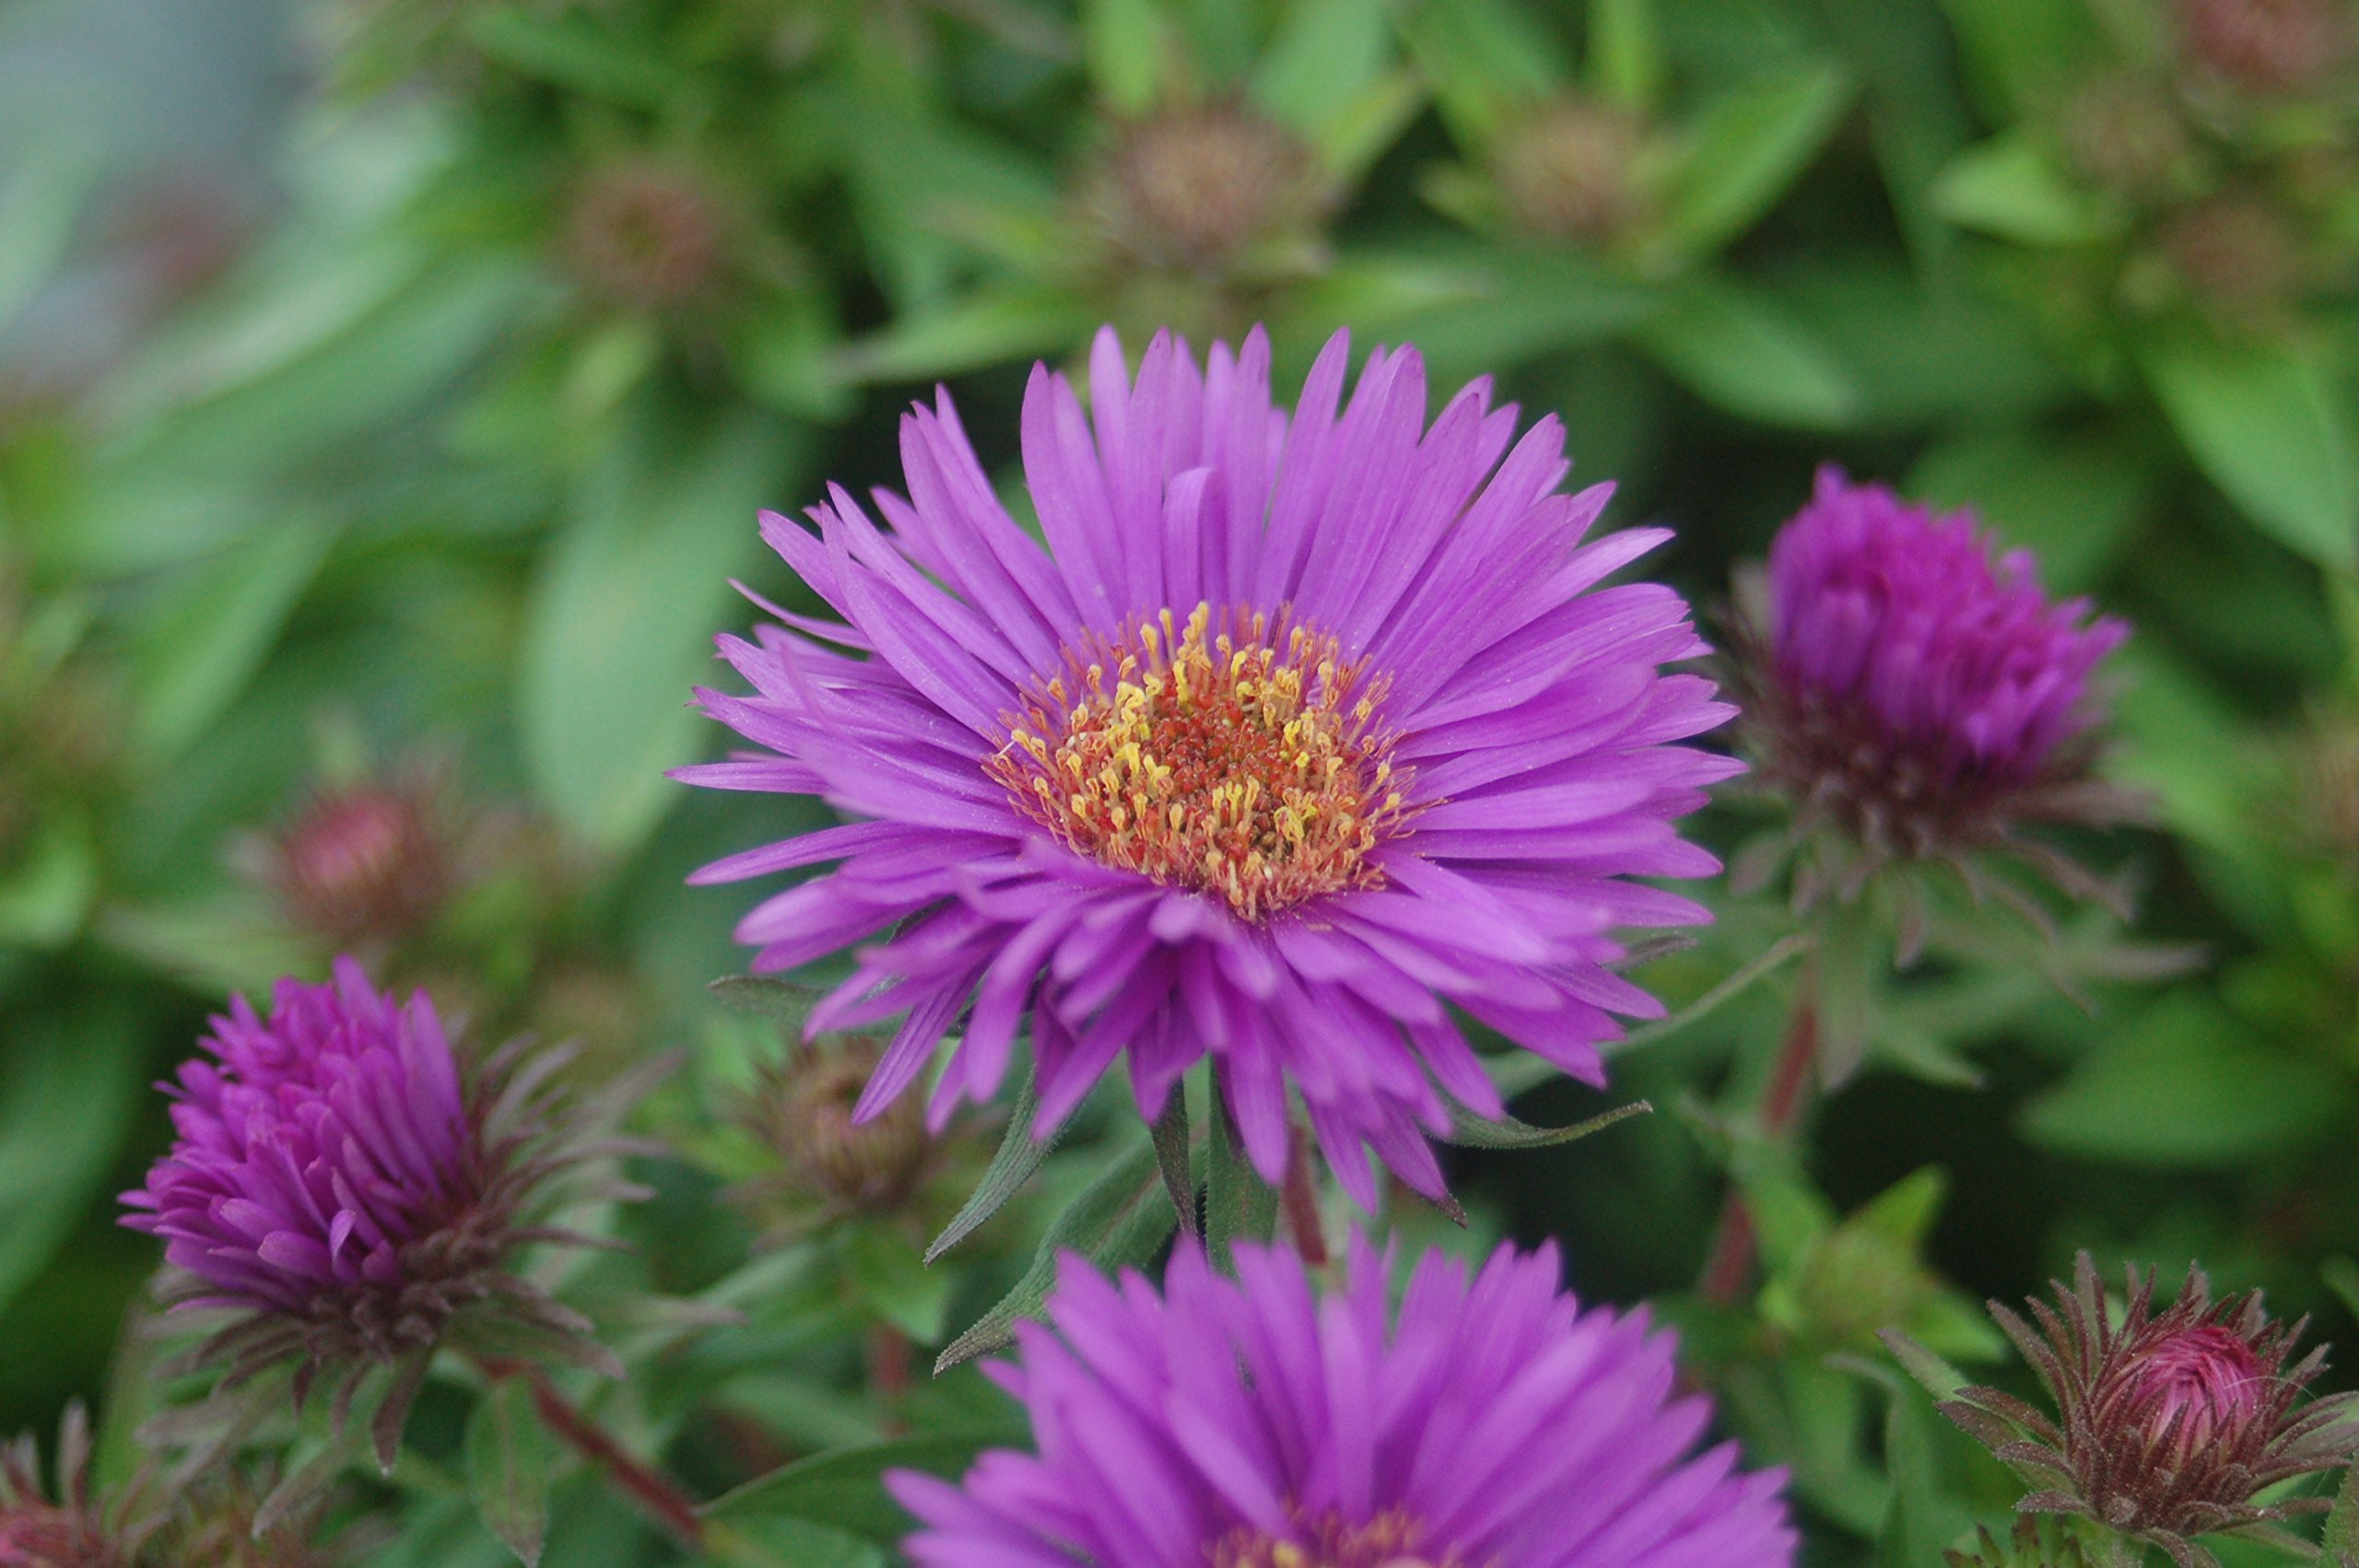 Aster novae-angliae 'Purple Dome' (New England Aster) Perennial, purple flowers, #2 - Size Container by Green Promise Farms